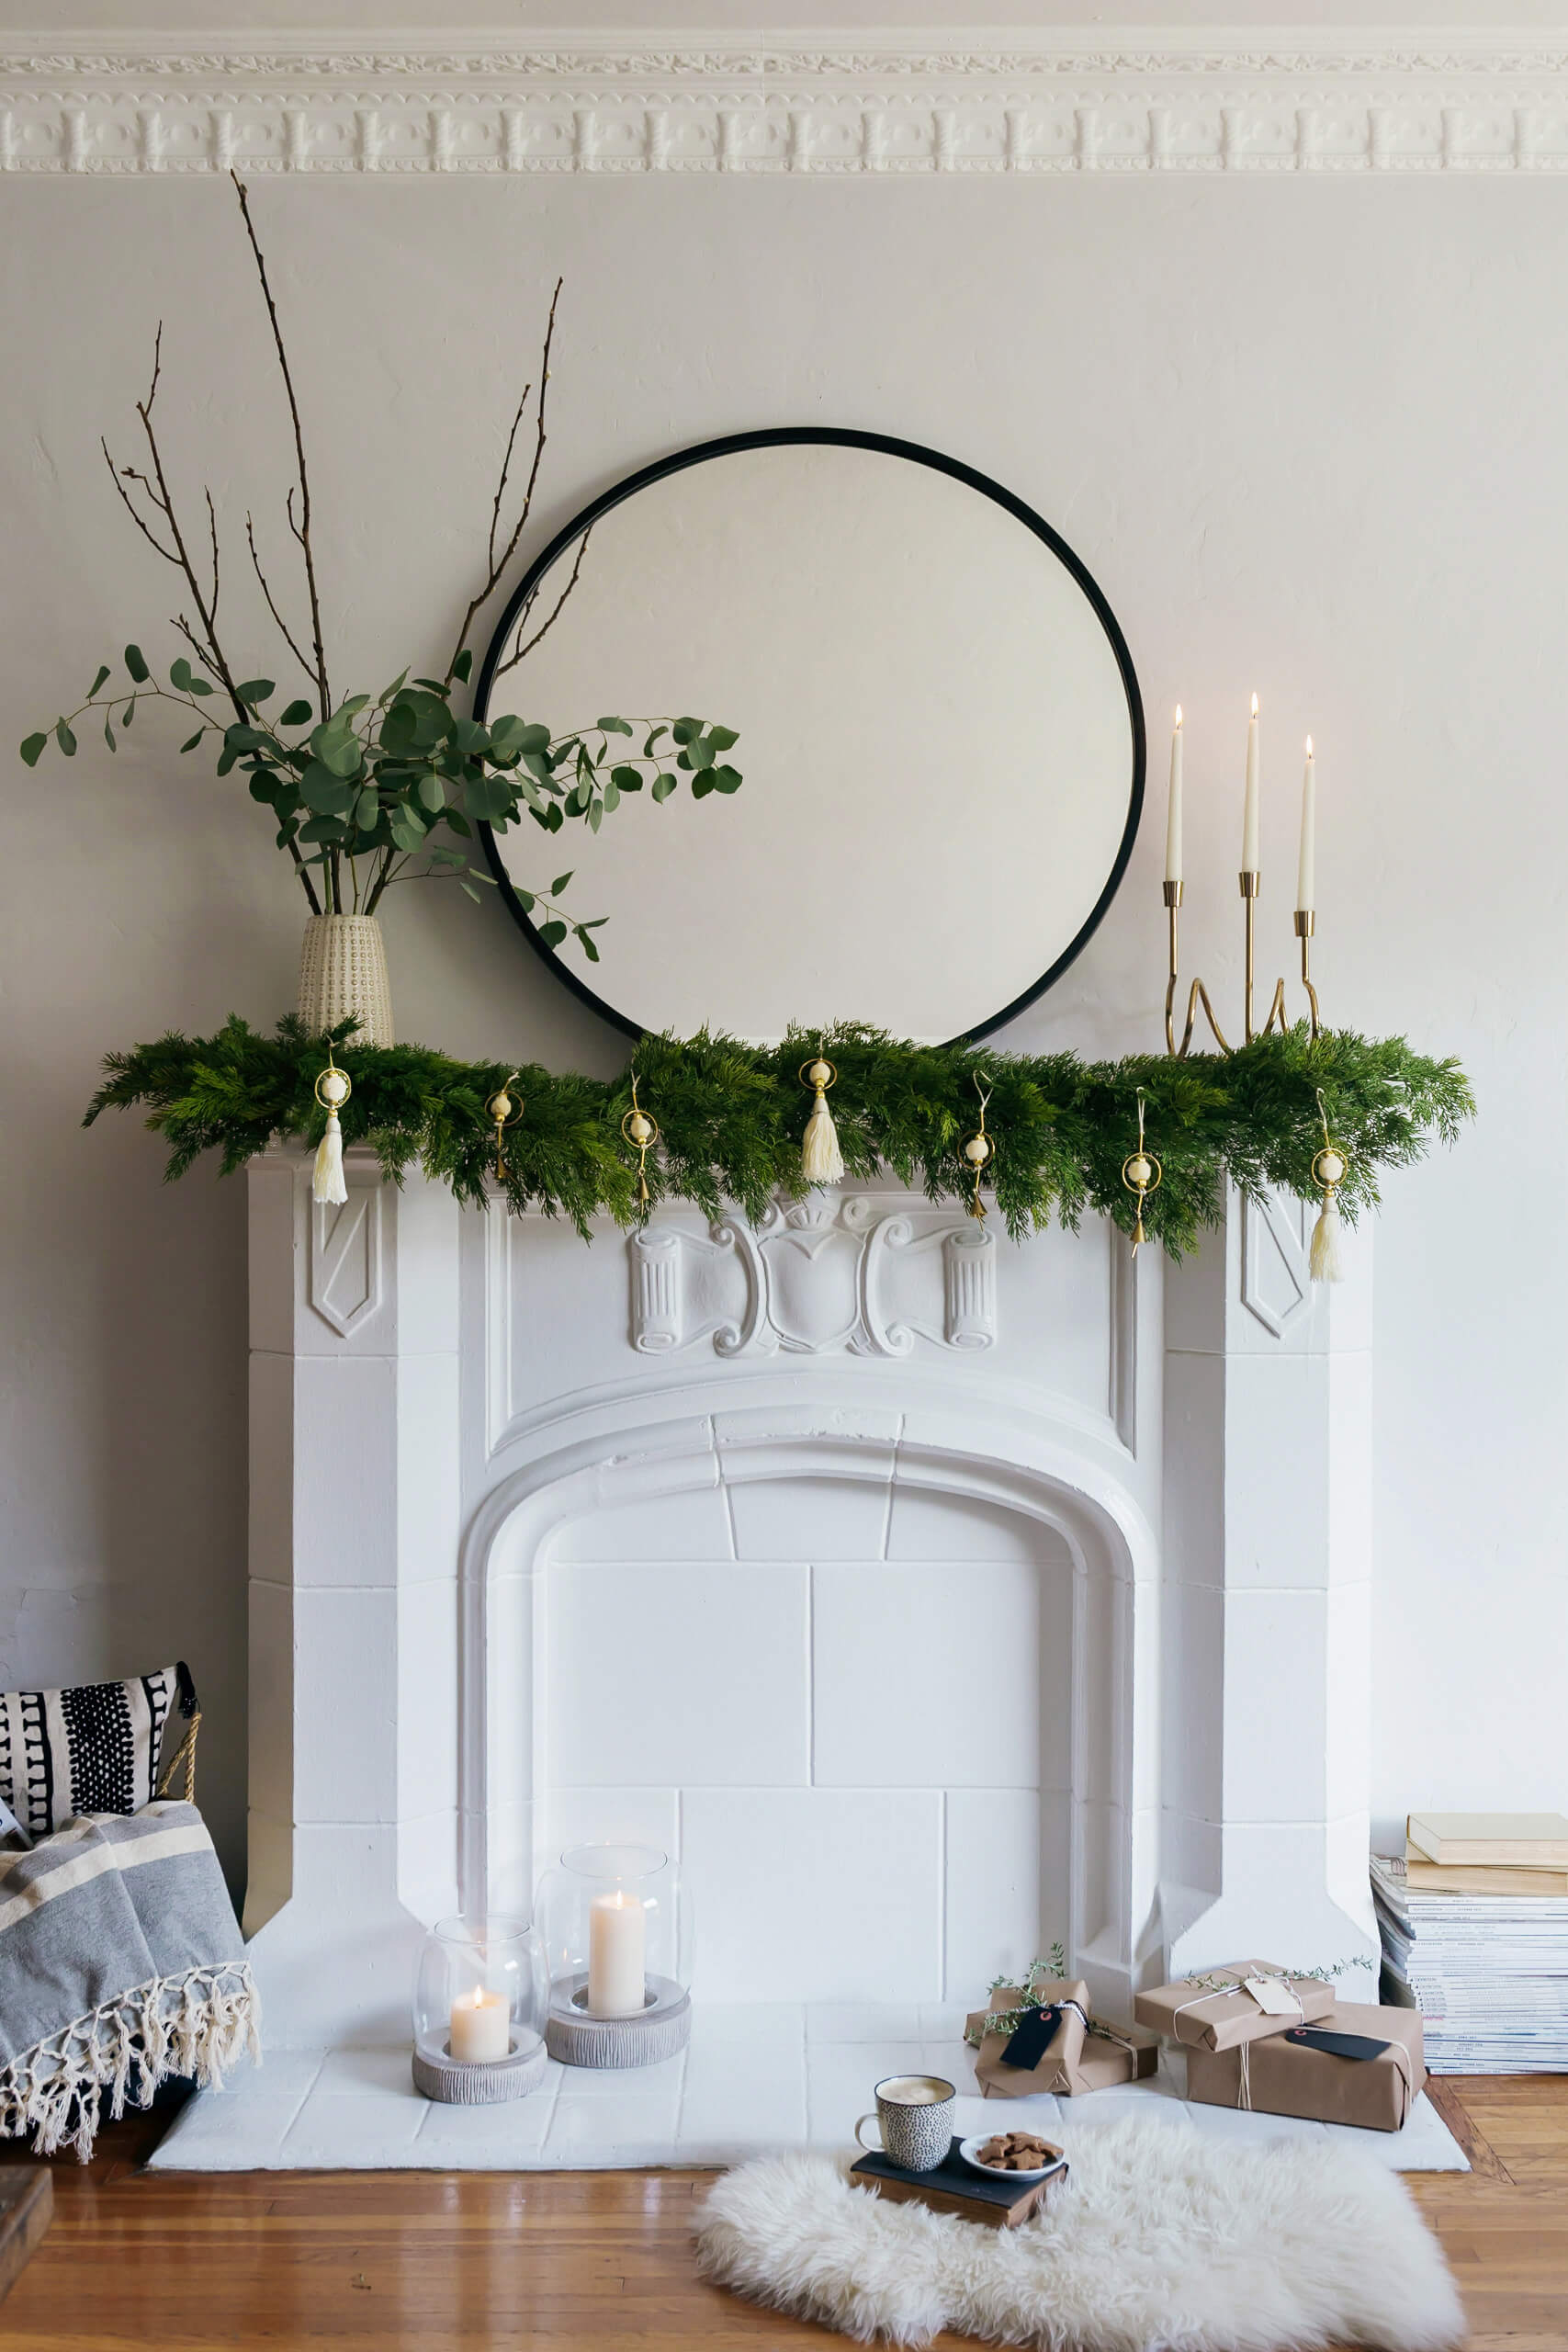 GINNY_MACDONALD_GARLAND_FIREPLACE